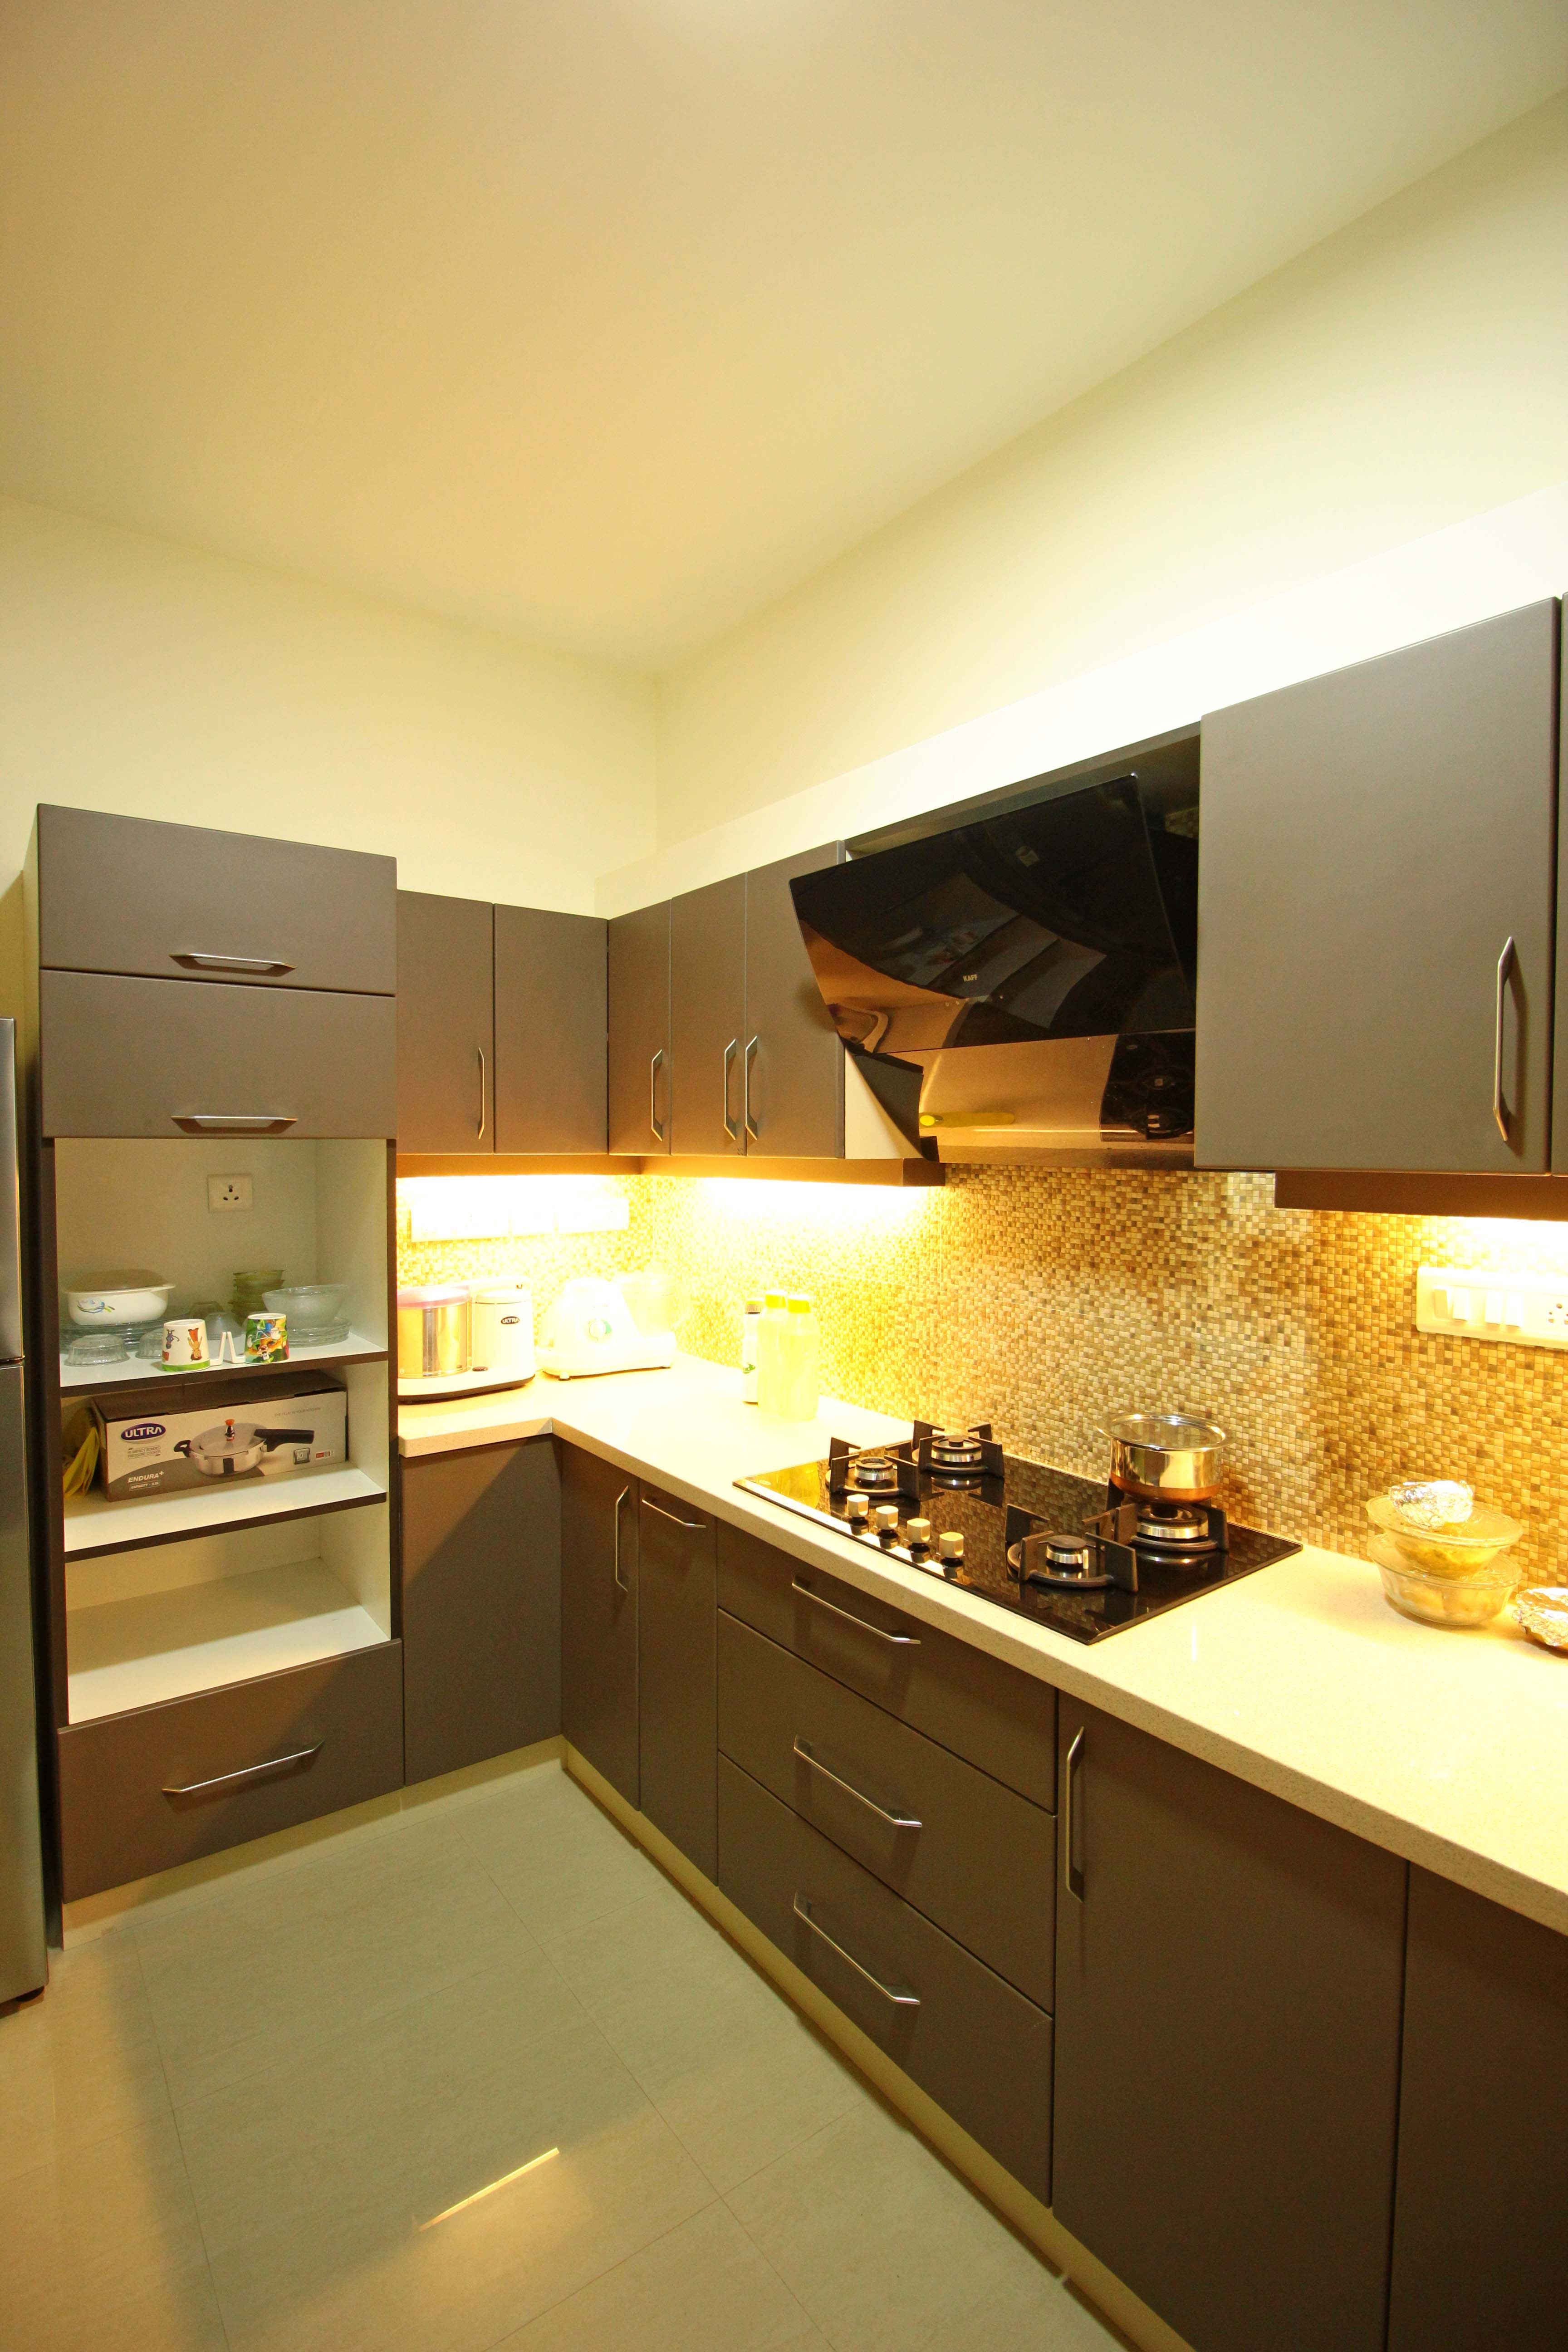 Black and white ambiance of the modular kitchen .Specious kitchen ...